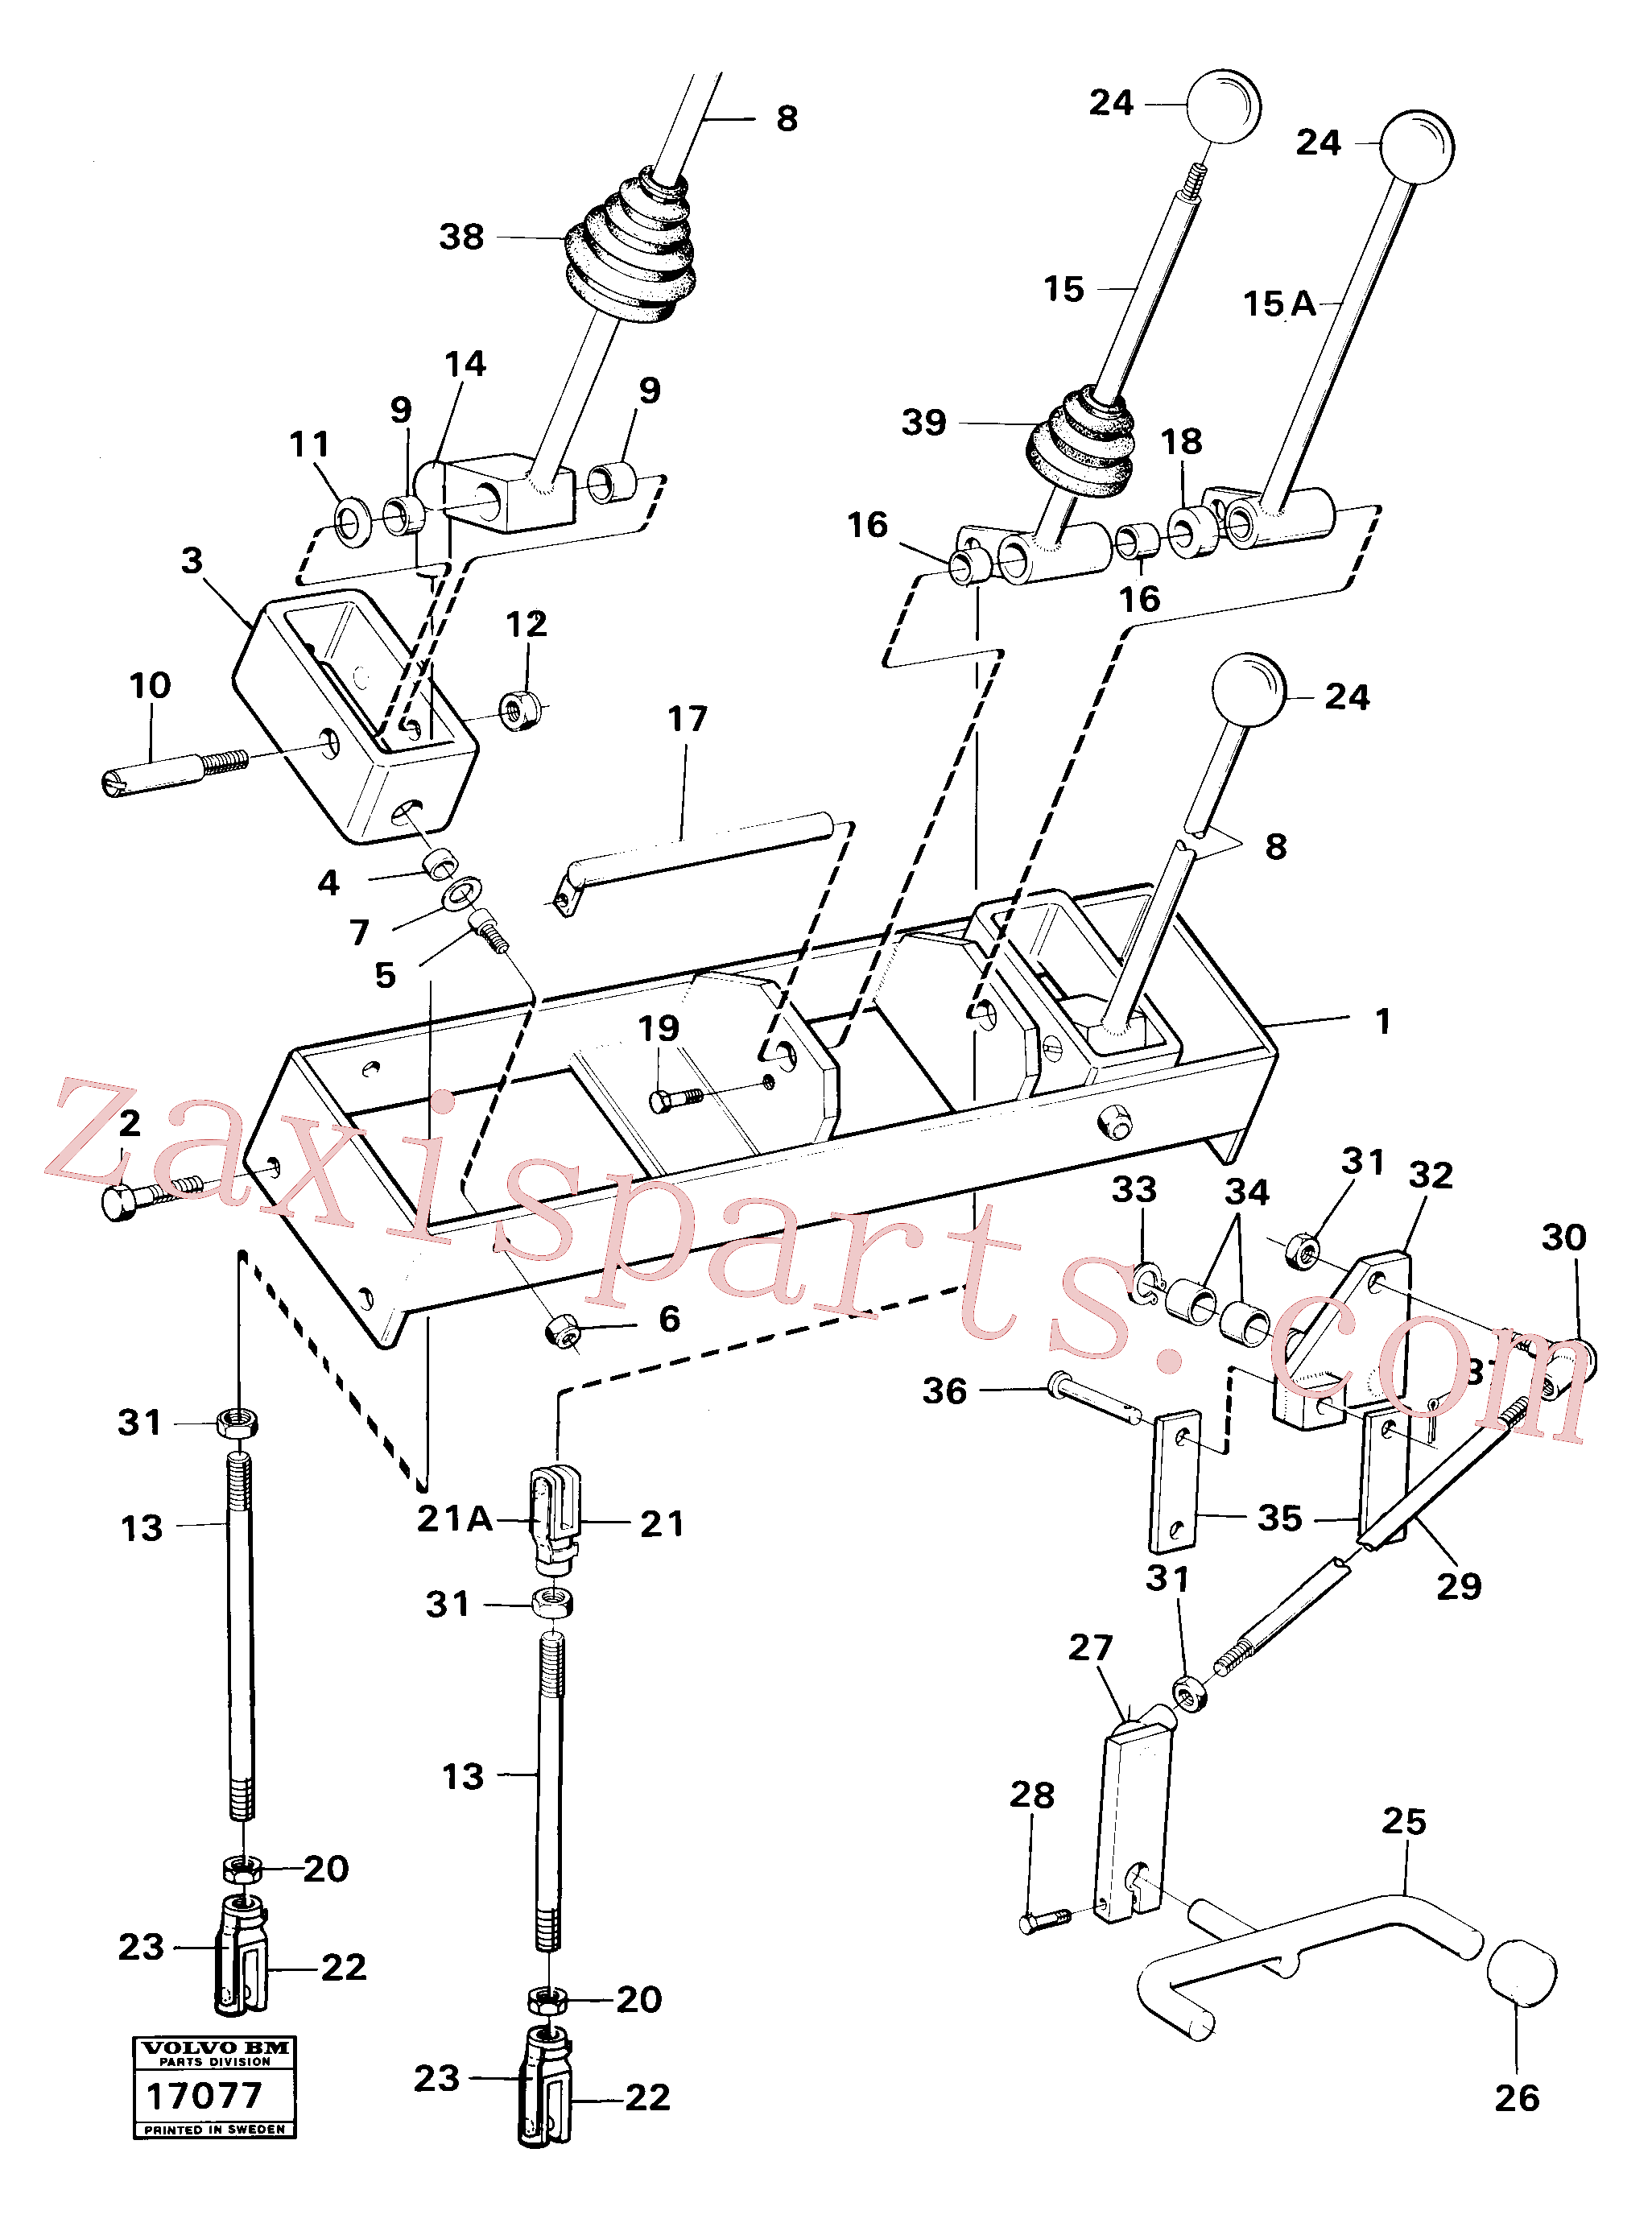 VOE959081 for Volvo Hydraulic controls excavator unit(17077 assembly)